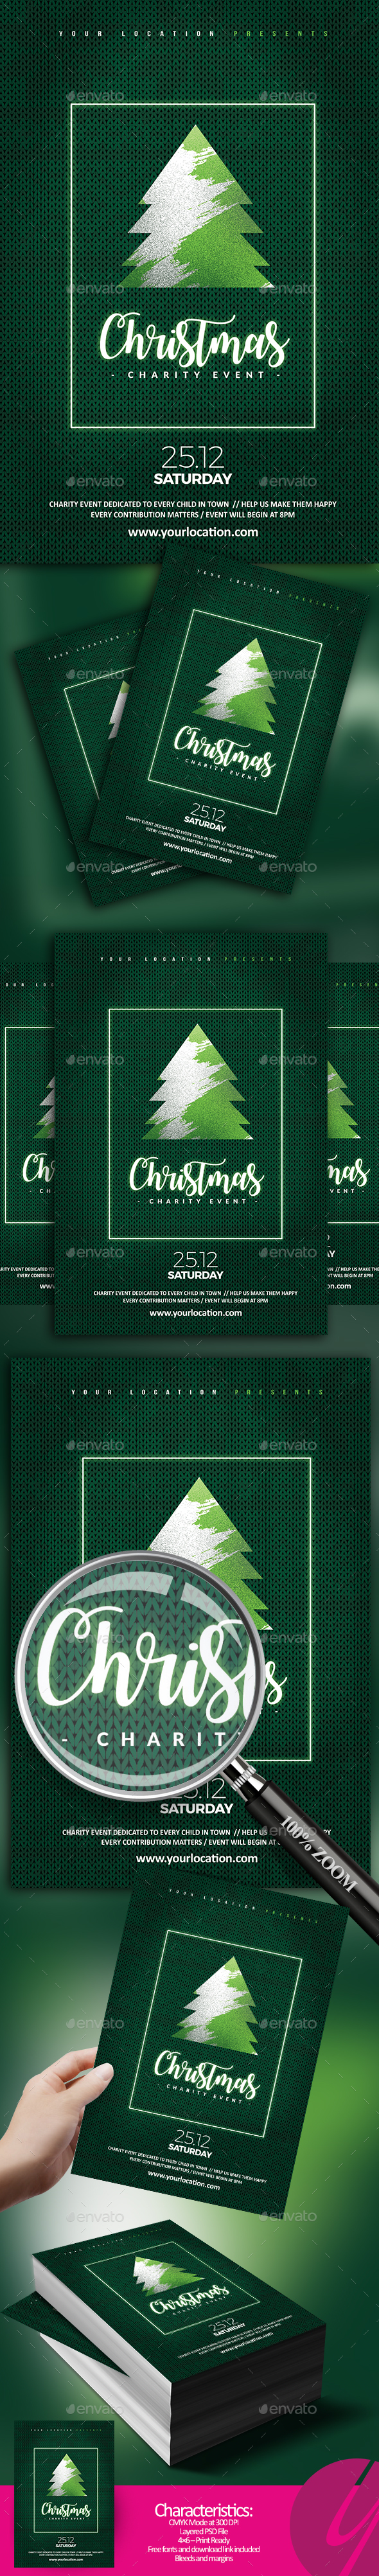 GraphicRiver Christmas Charity Flyer 20935565